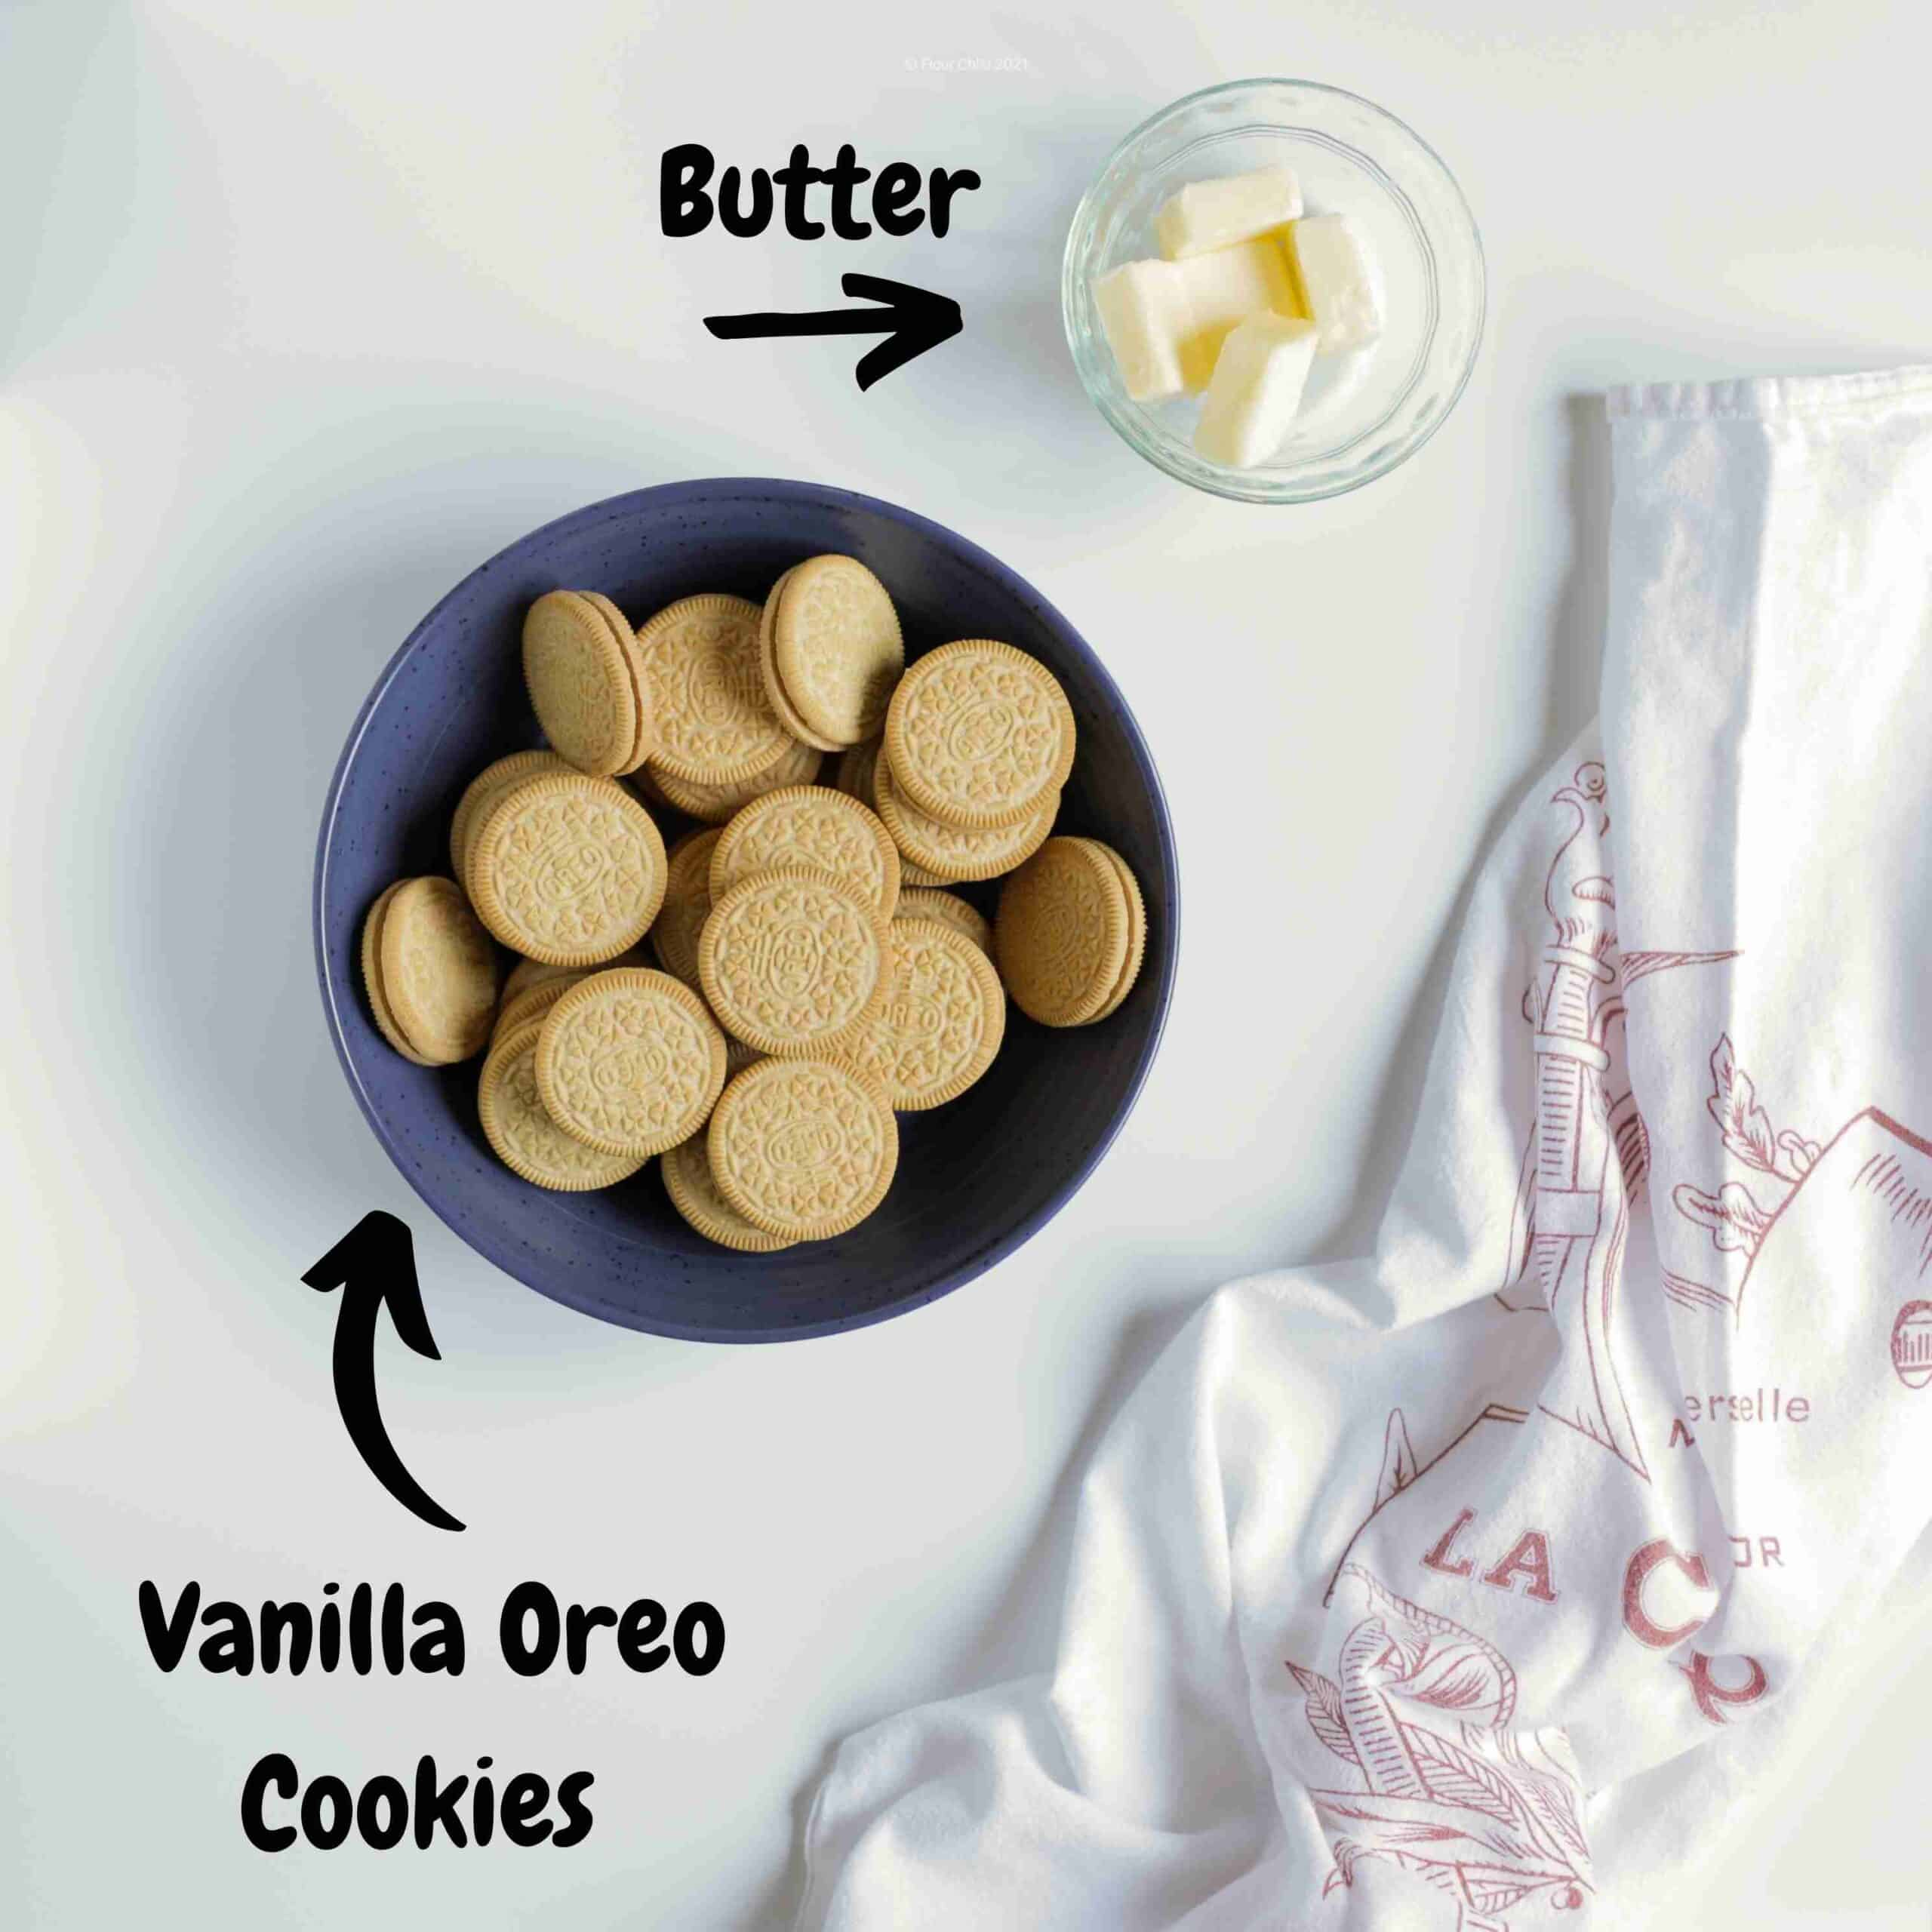 Vanilla Oreo cookies in a bowl with a small bowl of butter next to it